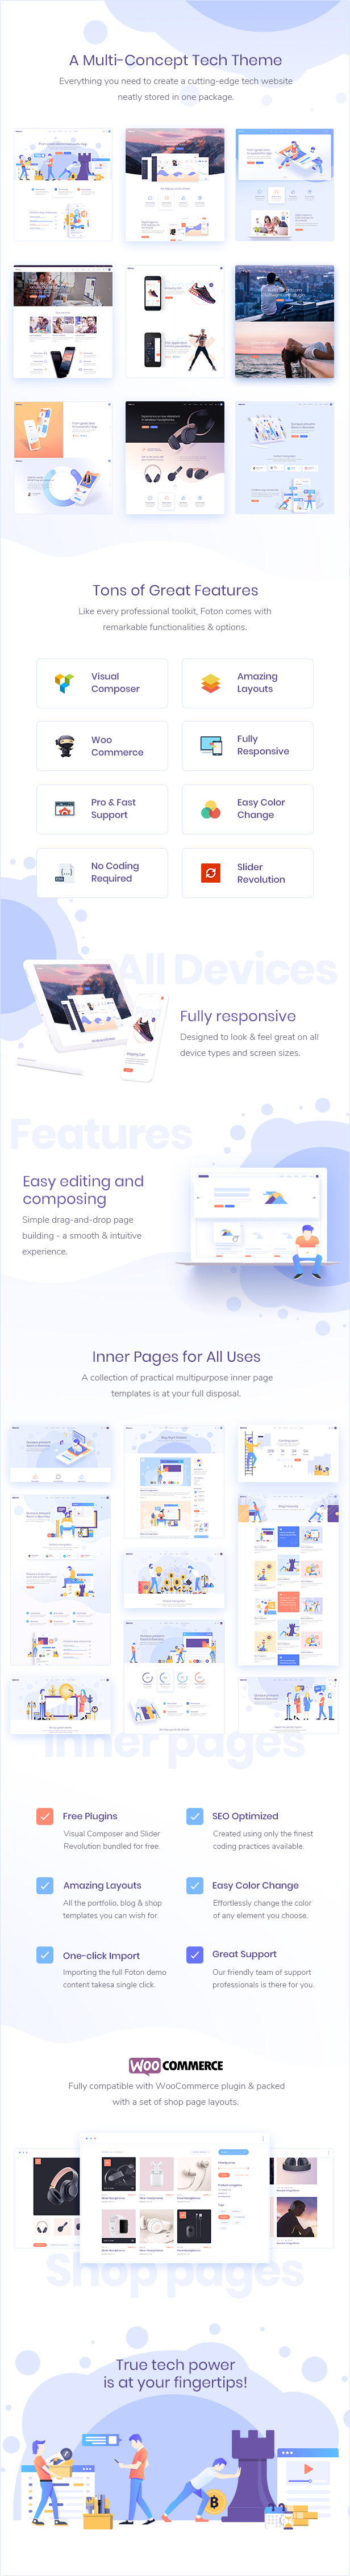 Foton - A Multi-concept Software and App Landing Theme - 1